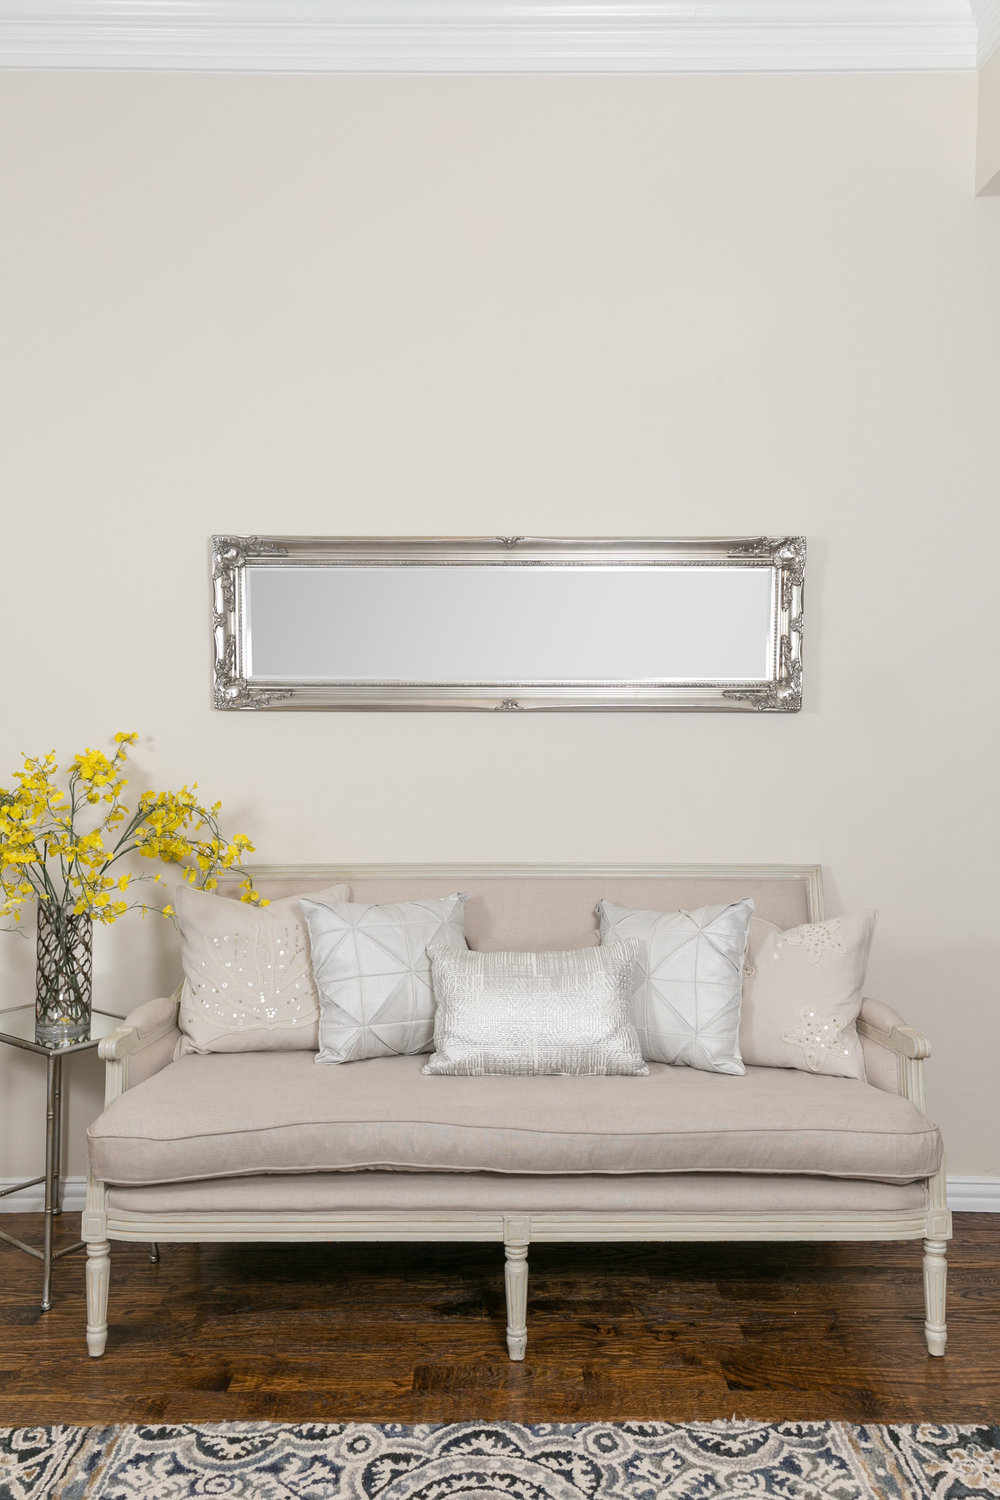 Full Length Mirrors -